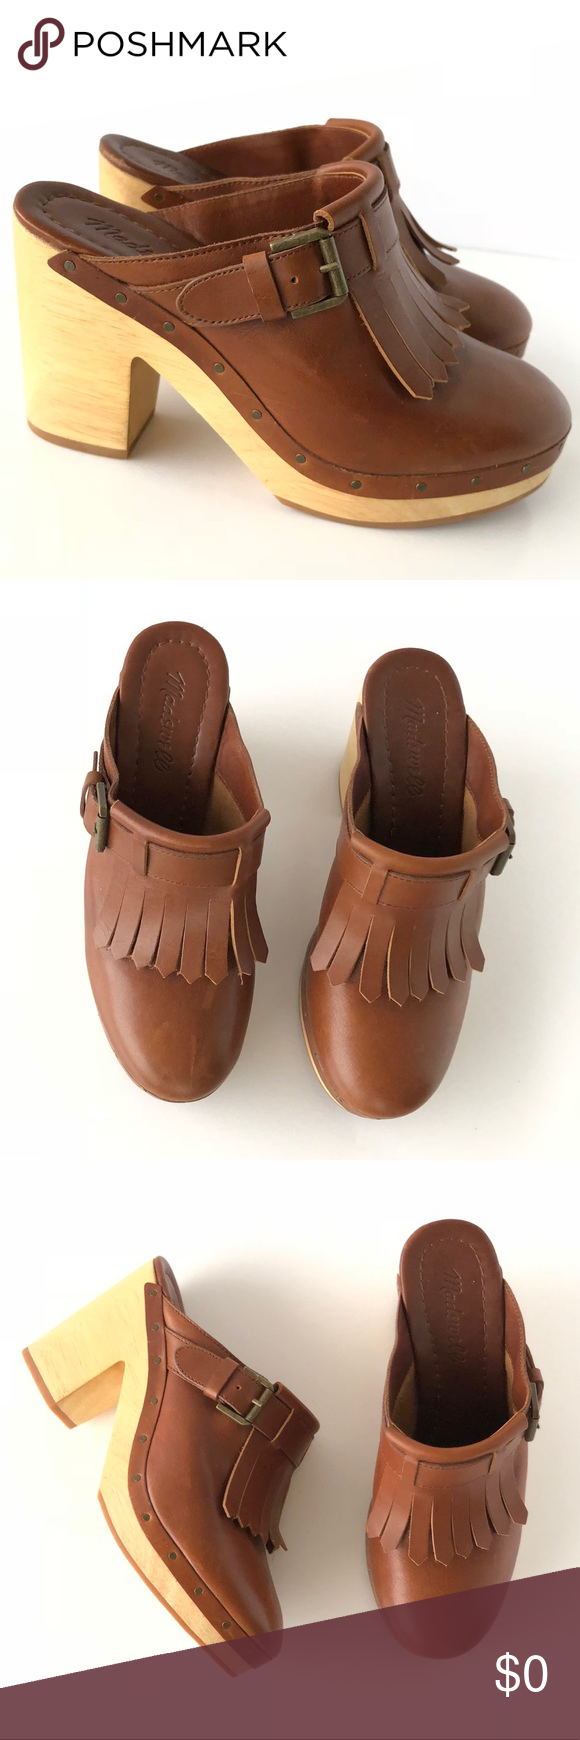 784281acfbfb Madewell Brown Leather Fringe Platform Clog Mules The perfect addition to  your flared denim. Features